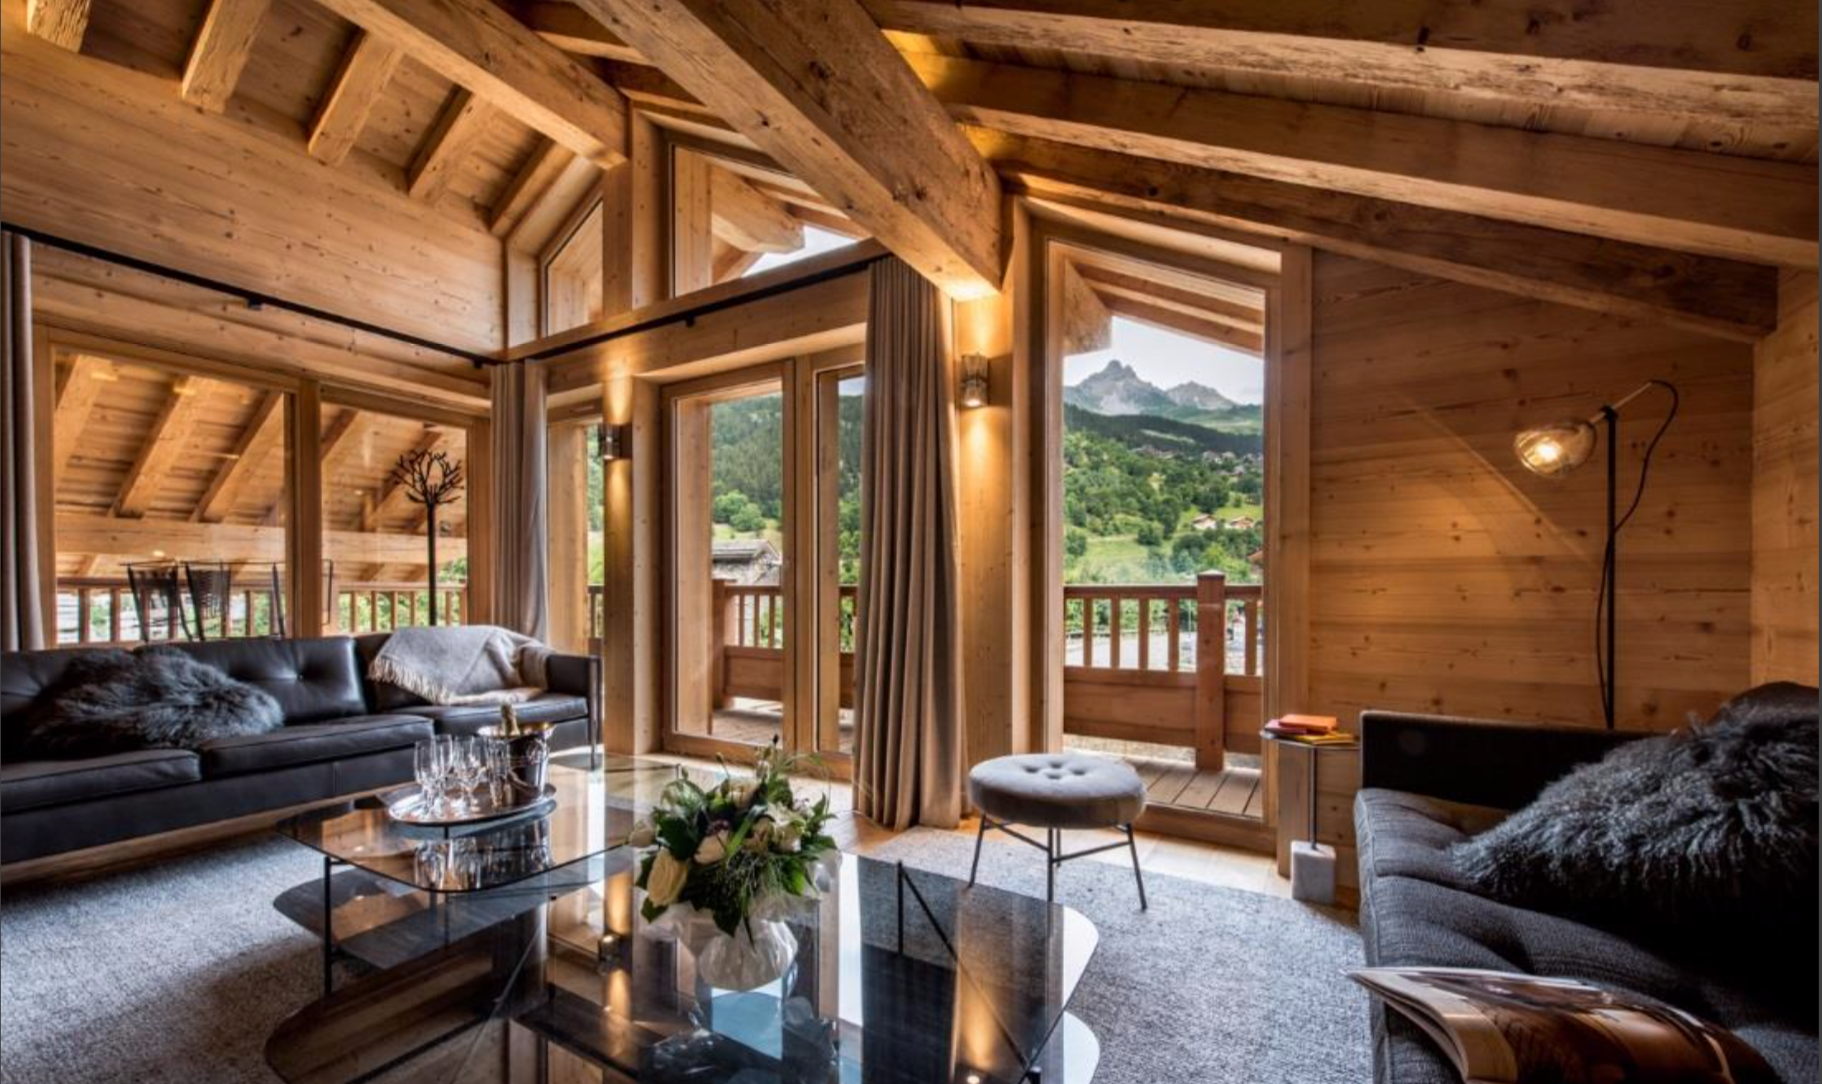 New-Build Sister-Chalets in Meribel